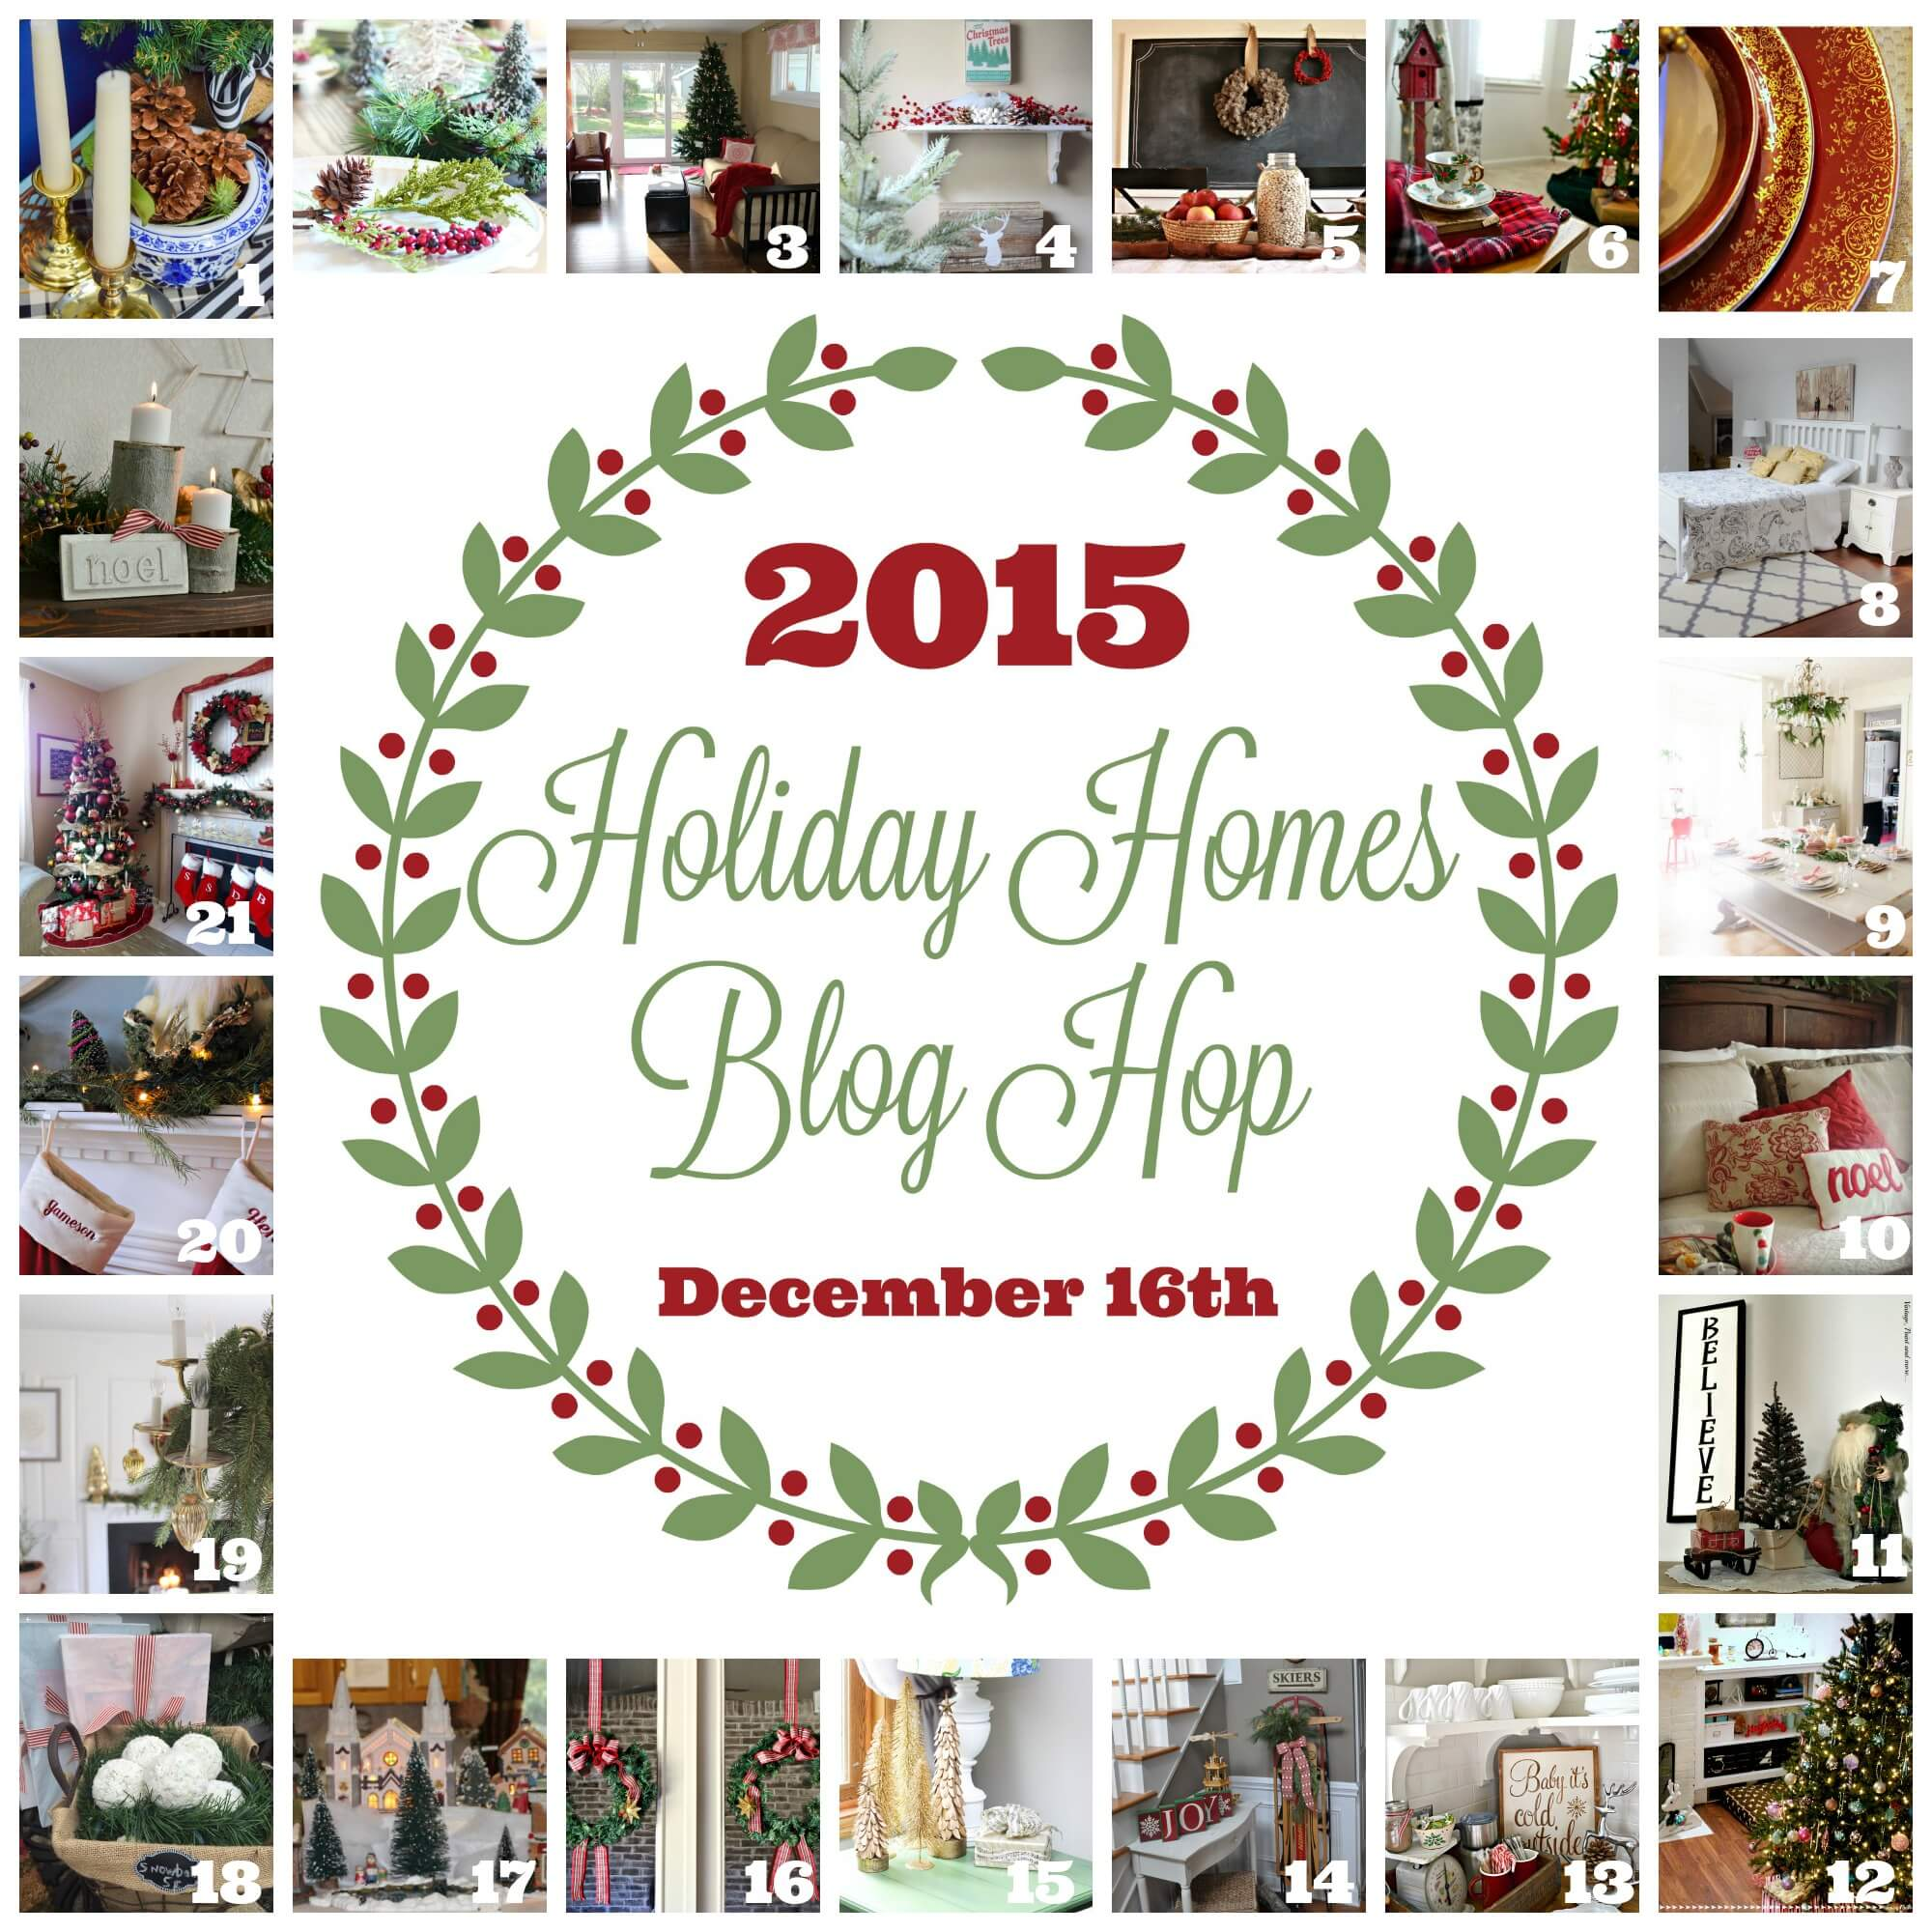 Holiday Homes Blog Hop